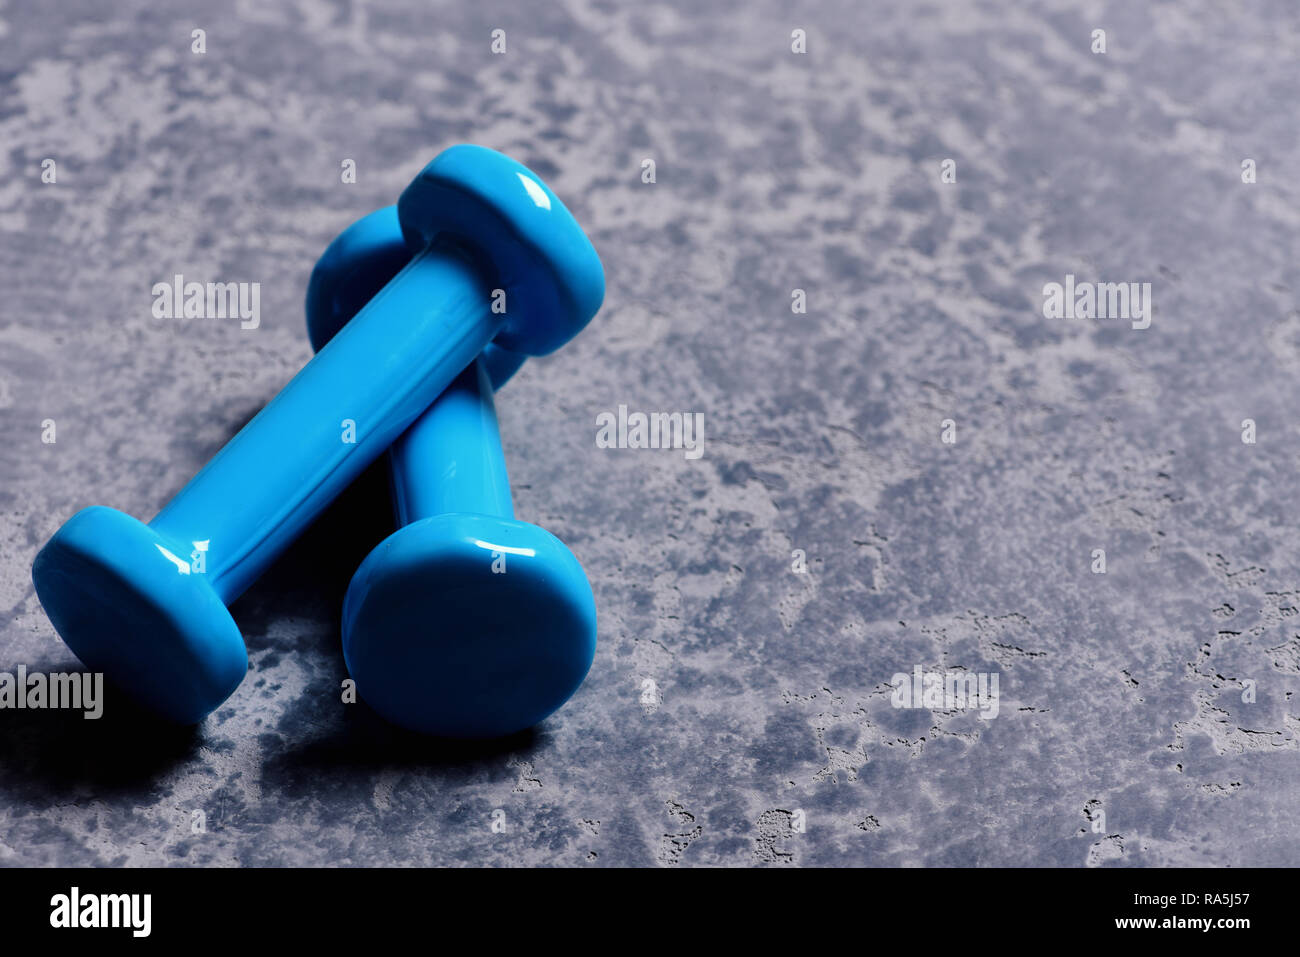 Barbells placed crosswise in close up. Dumbbells made of cyan plastic on defocused grey texture background. Sports and healthy lifestyle concept. Shaping and fitness equipment, copy space - Stock Image